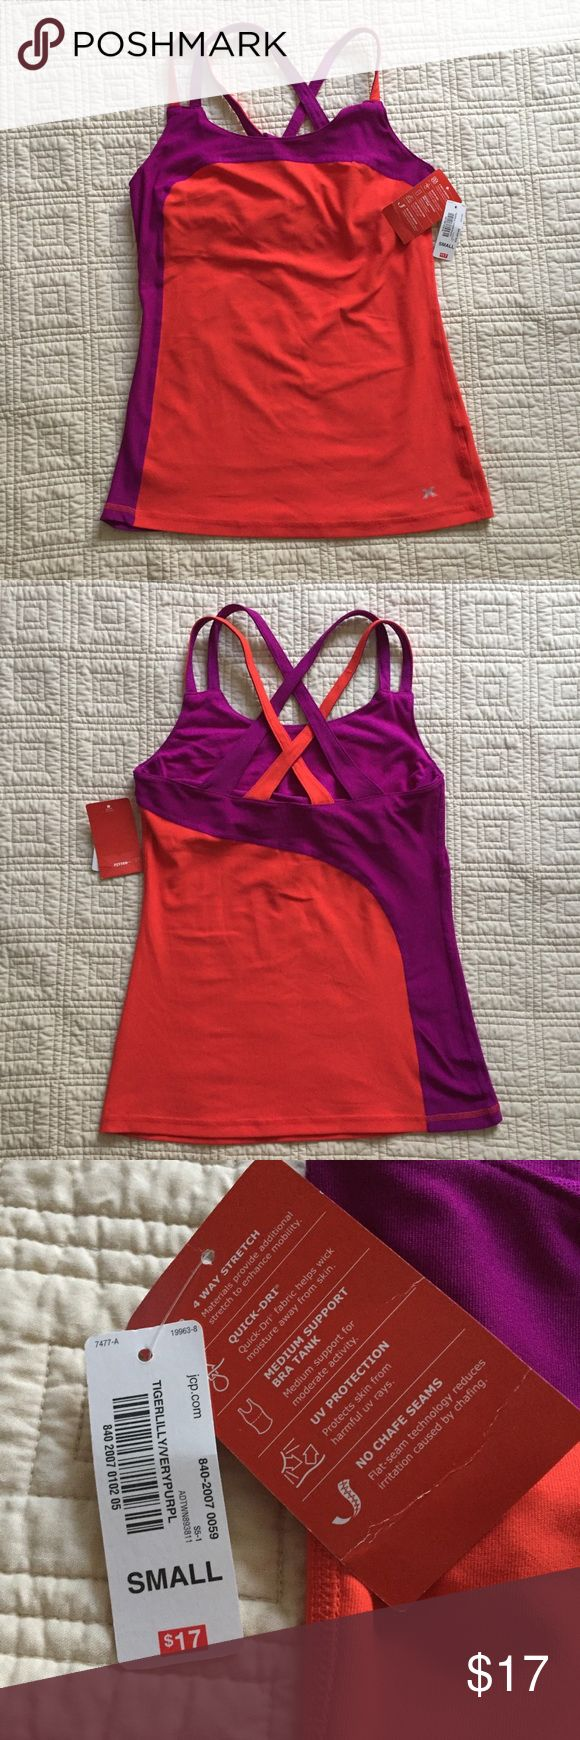 Women's Athletic/Workout Top Women's Athletic/Workout Top | Orange and Purple strappy workout top for women. Unlined built-in bra. Brand new with tags. Perfect for any workout! Tops Tank Tops